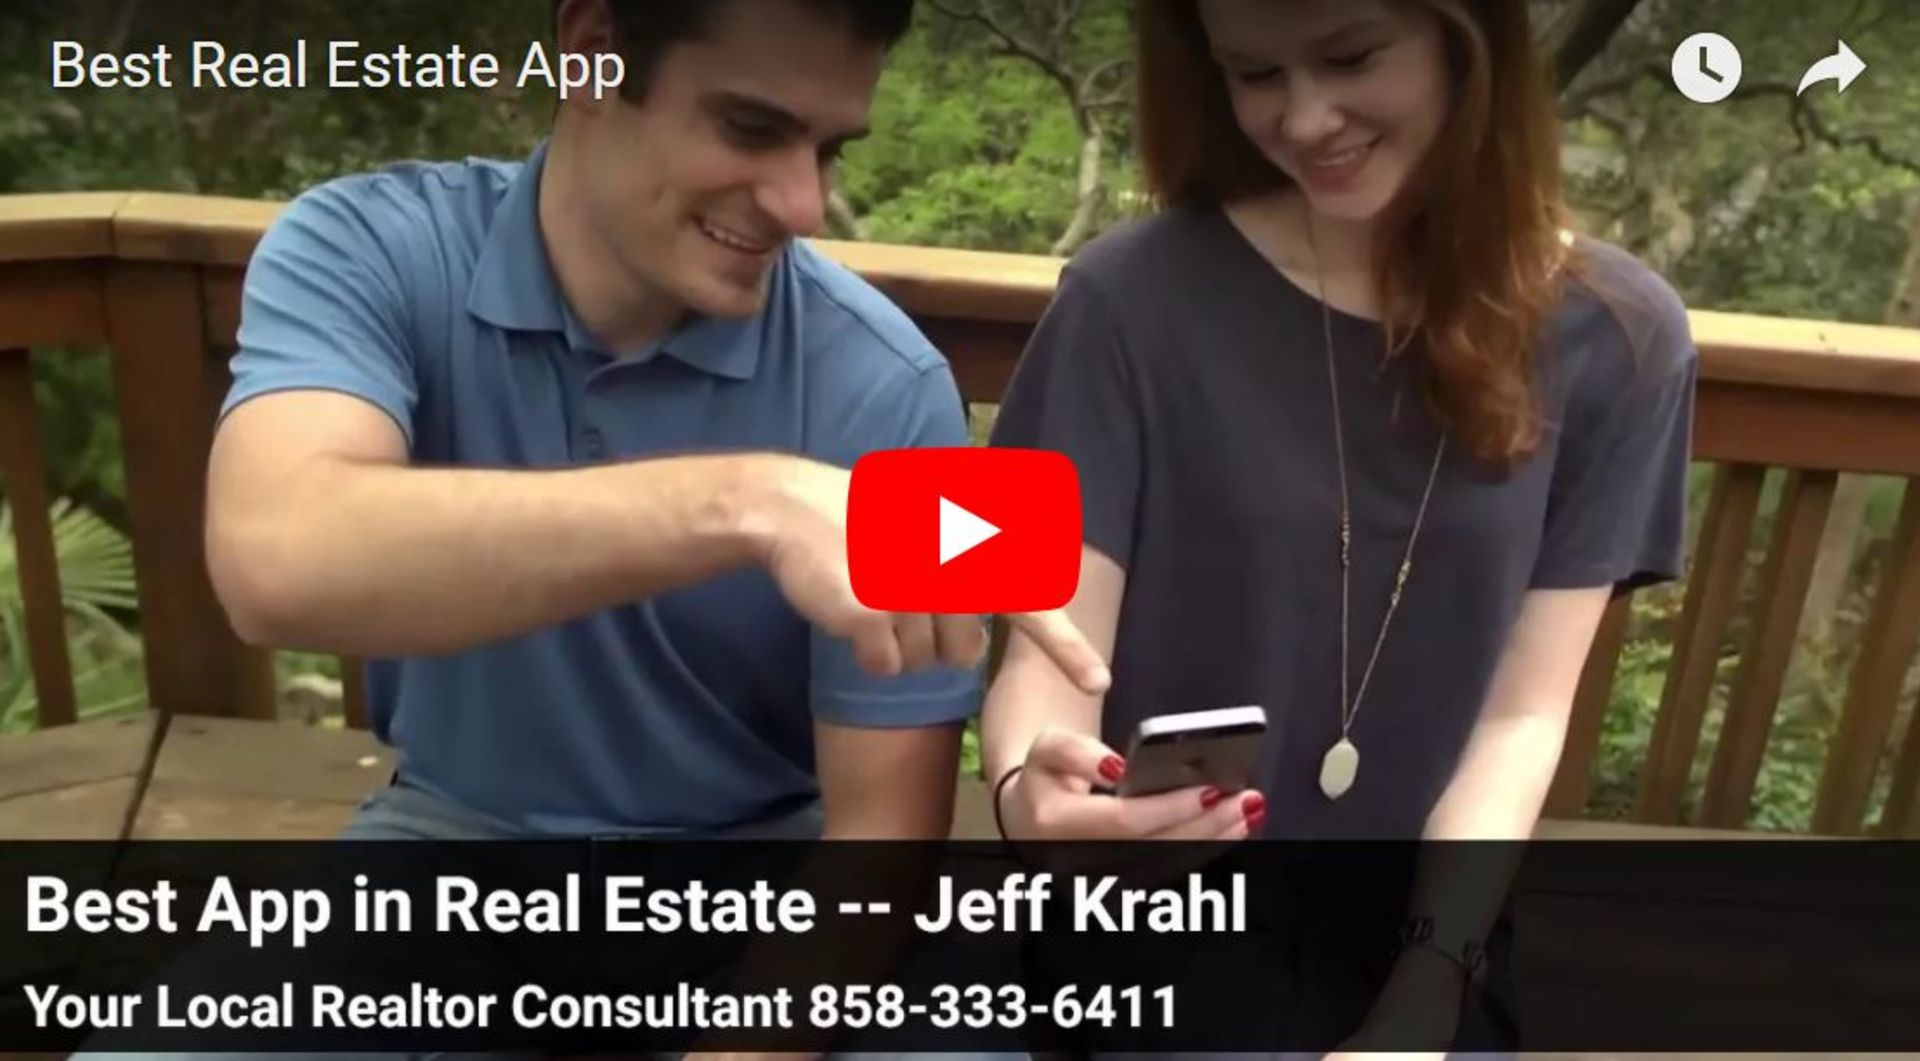 Best Real Estate App